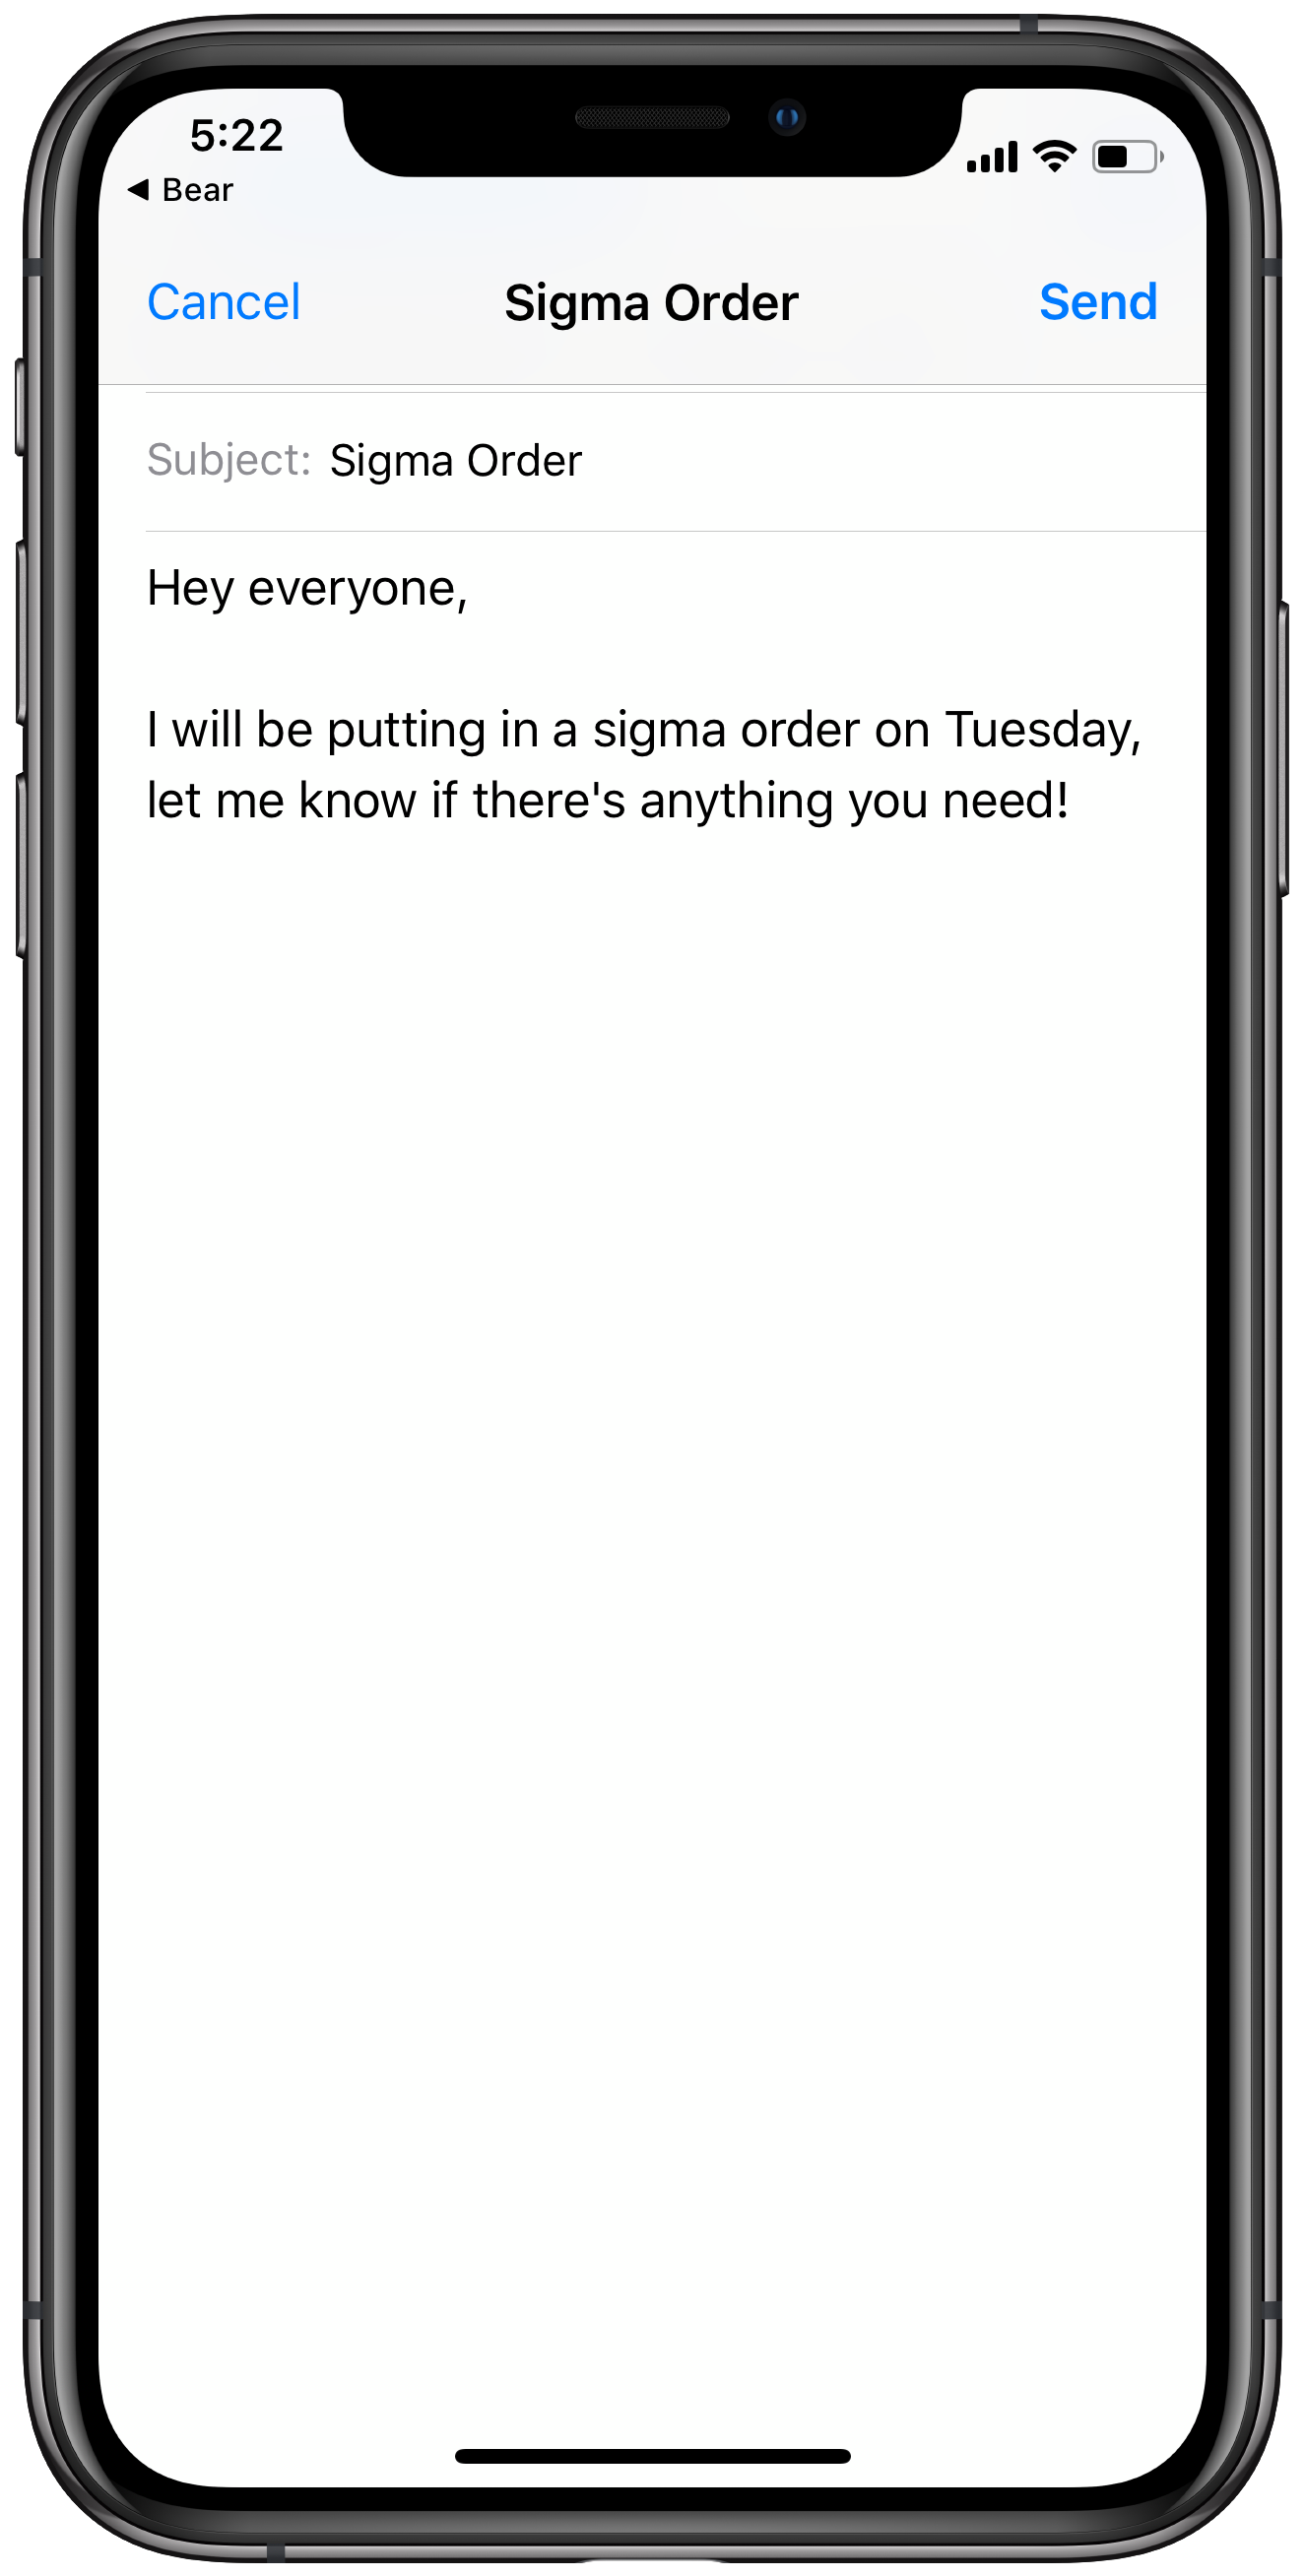 Send an email to your coworkers using the shortcut to let them know about the order